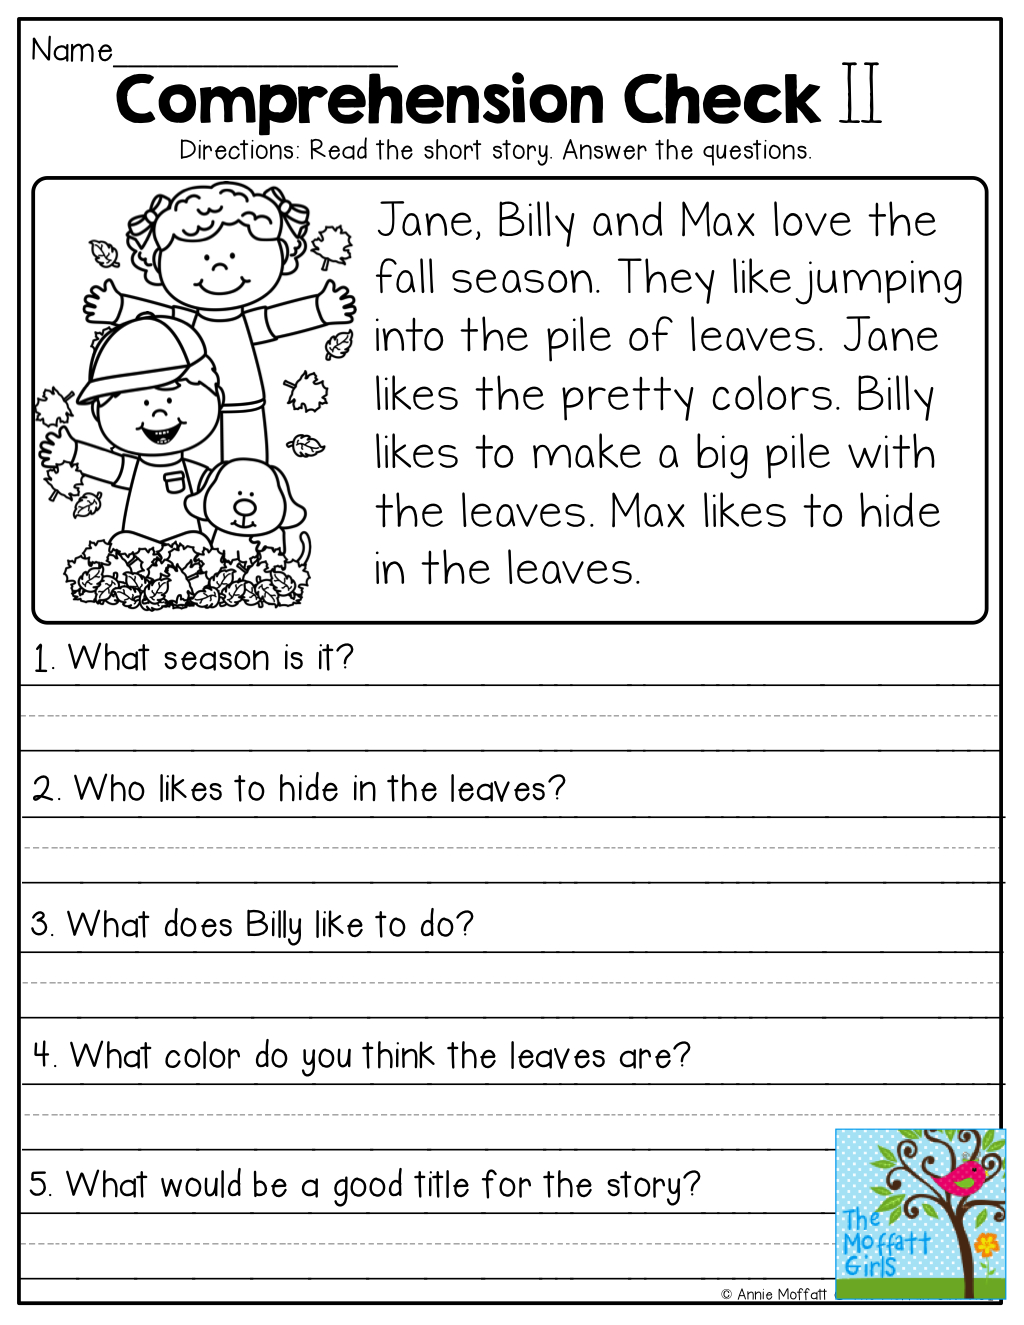 Comprehension Checks And So Many More Useful Printables! | Test Of - Free Printable Short Stories For Grade 3